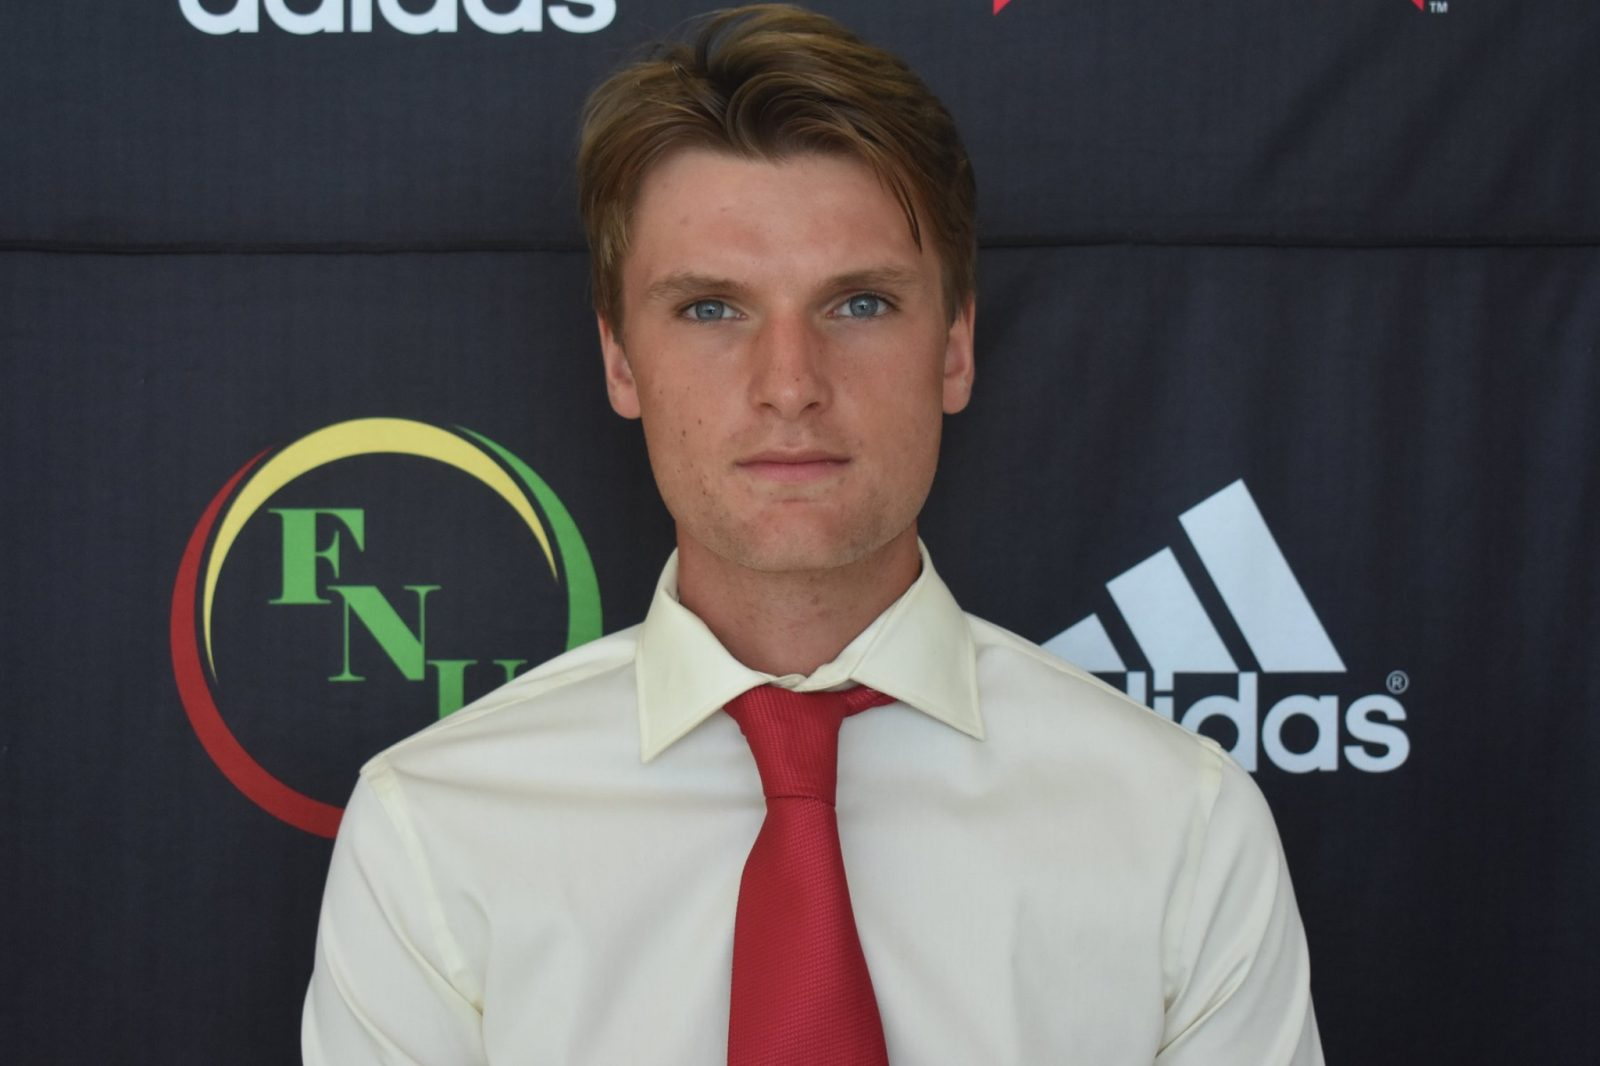 FNU Tennis Player Hamish Lee picture